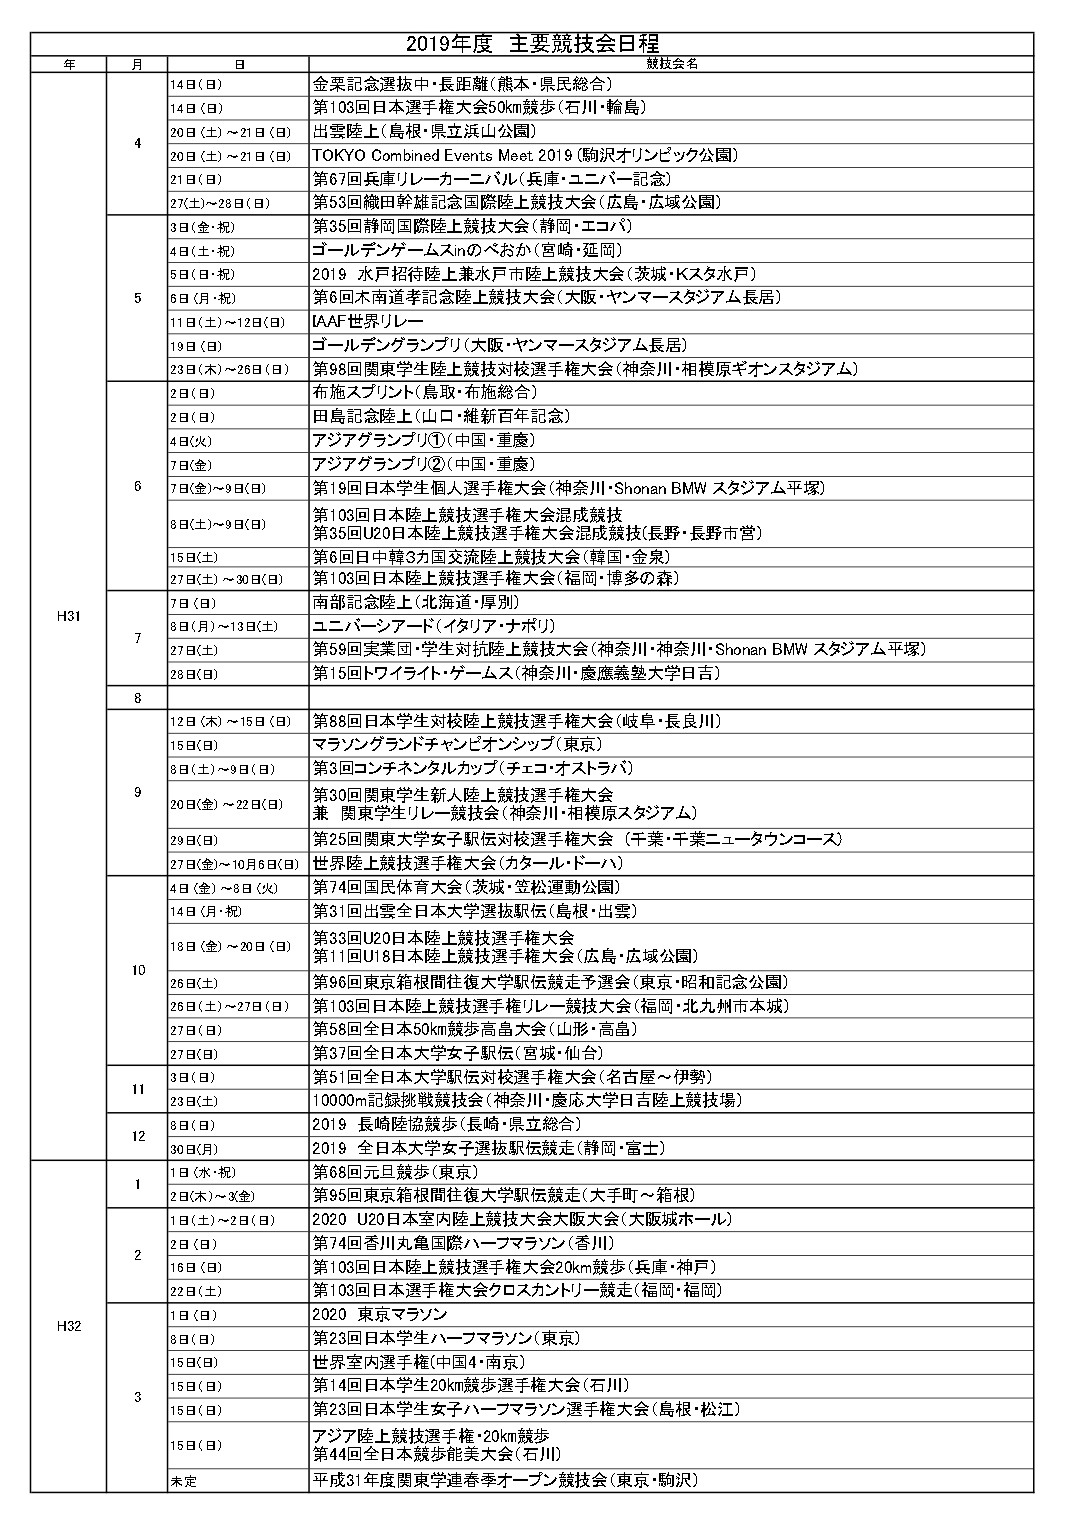 H31年度主要競技会日程 (version 1)_pages-to-jpg-0001